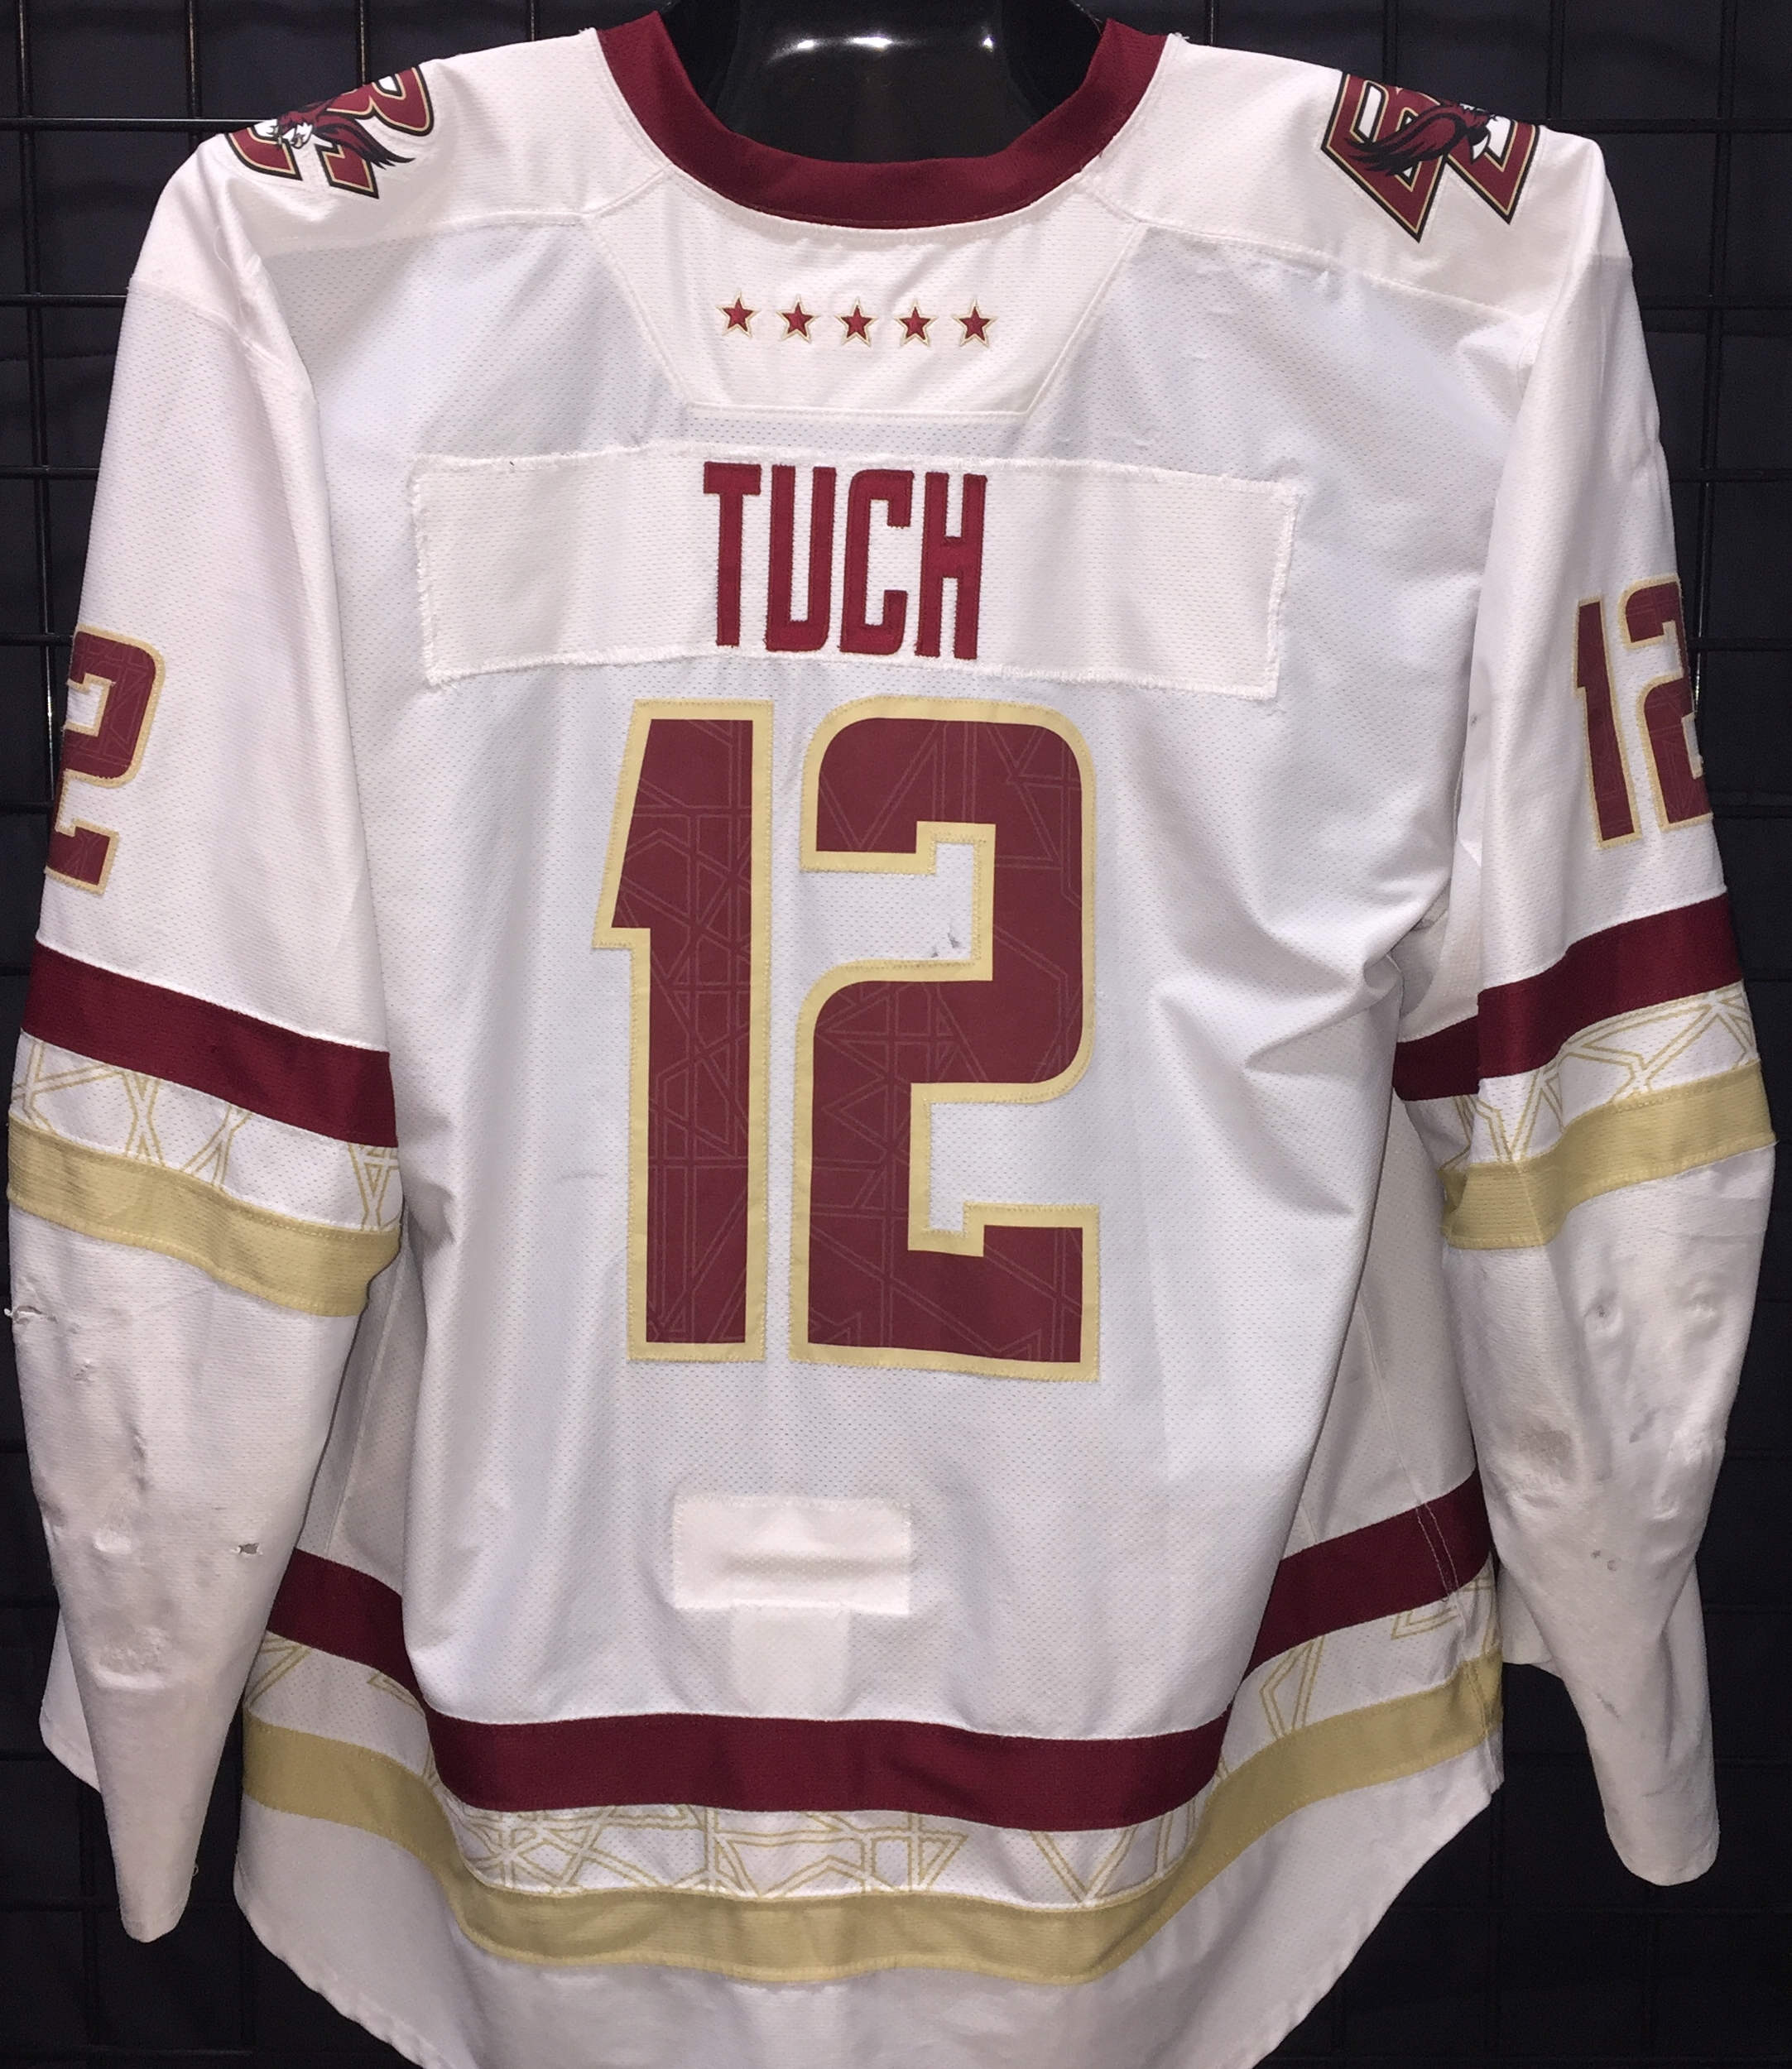 new style af2d6 bb57d Alex Tuch - Boston College - Game Used/Worn Jerseys - GV Jerseys